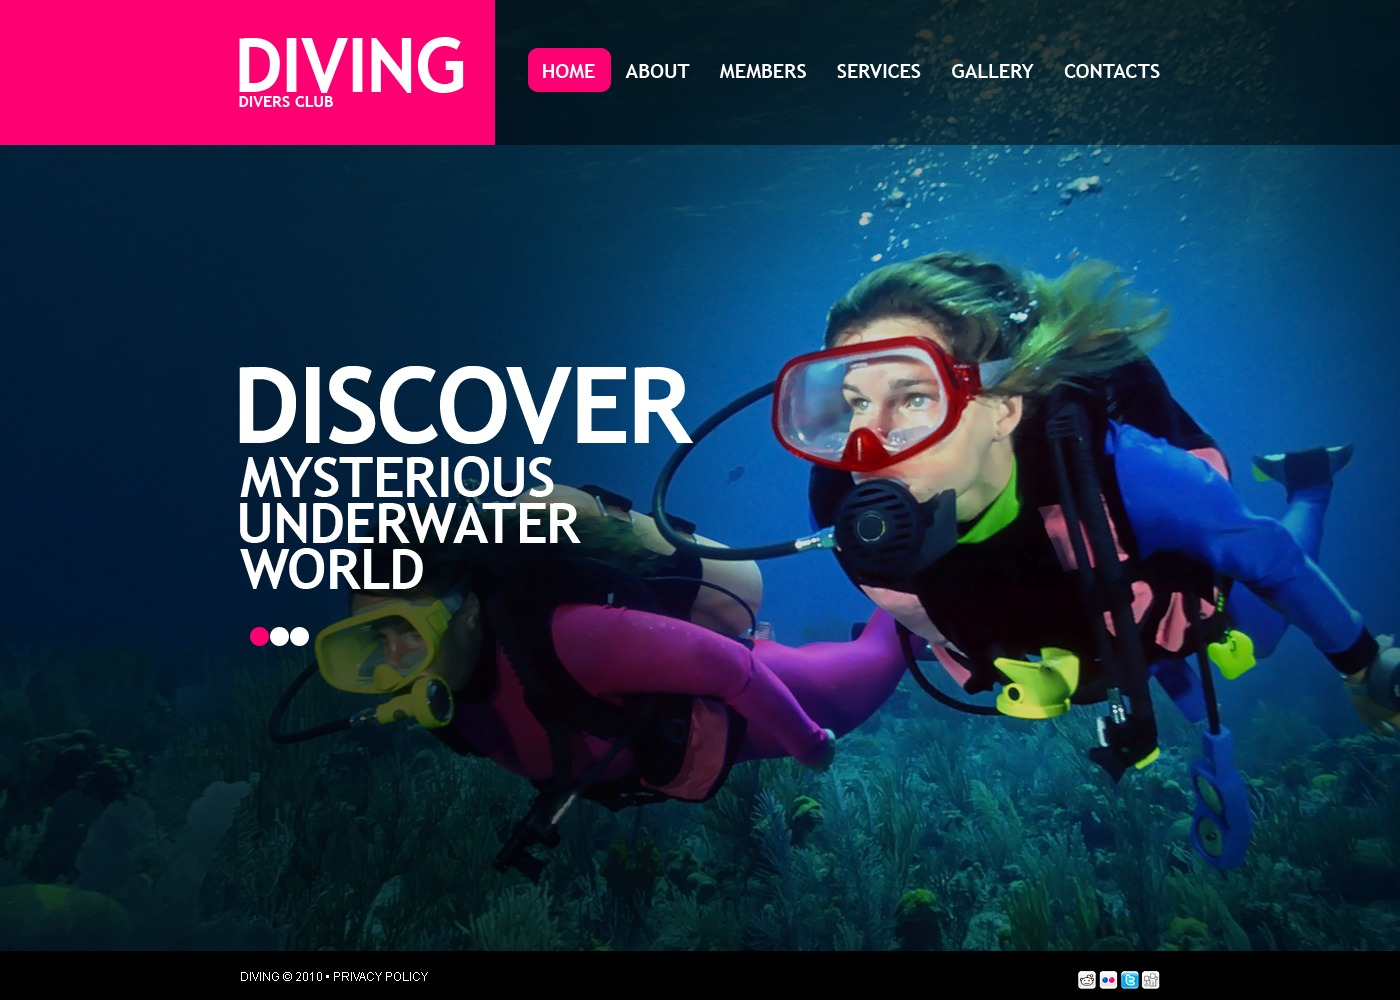 The Diving Club PSD Design 54339, one of the best PSD templates of its kind (sport, most popular, wide, jquery), also known as diving club PSD template, member PSD template, water PSD template, sea PSD template, ocean PSD template, wave PSD template, scuba-diver PSD template, aqualung PSD template, submarine PSD template, underwater PSD template, oxygen PSD template, fish PSD template, coral PSD template, flippers PSD template, mask PSD template, reef PSD template, diving-suit PSD template, photography PSD template, camera PSD template, training PSD template, services PSD template, trainer PSD template, ring-buoy PSD template, life-guard PSD template, subscription PSD template, rules PSD template, travel PSD template, equipment and related with diving club, member, water, sea, ocean, wave, scuba-diver, aqualung, submarine, underwater, oxygen, fish, coral, flippers, mask, reef, diving-suit, photography, camera, training, services, trainer, ring-buoy, life-guard, subscription, rules, travel, equipment, etc.